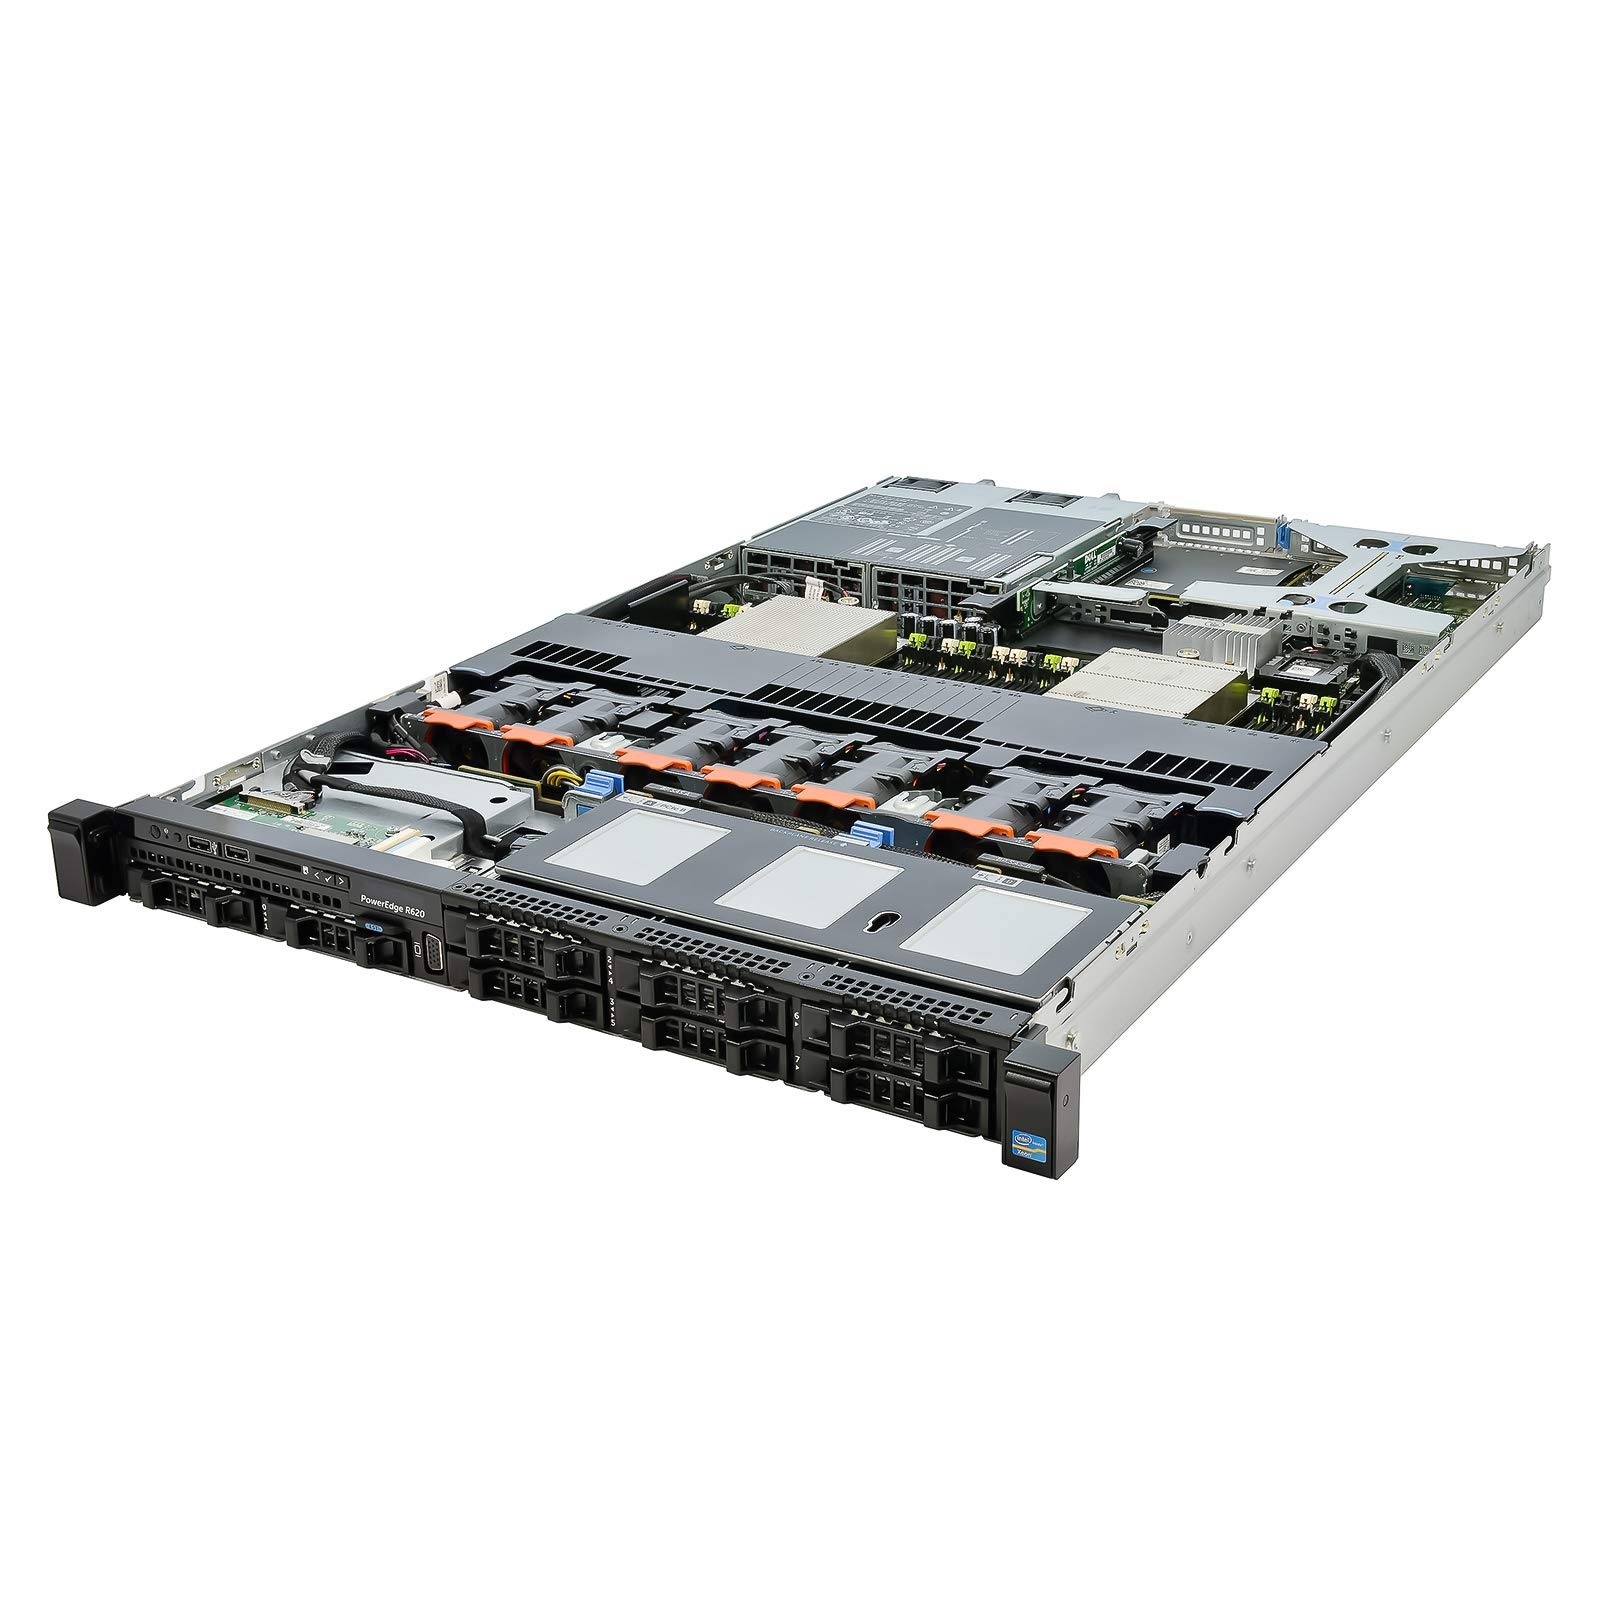 DELL PowerEdge R620 Server 2.90Ghz 16-Core 192GB 2X 512GB SSD 6X 1TB High-End (Certified Refurbished) by Dell (Image #4)